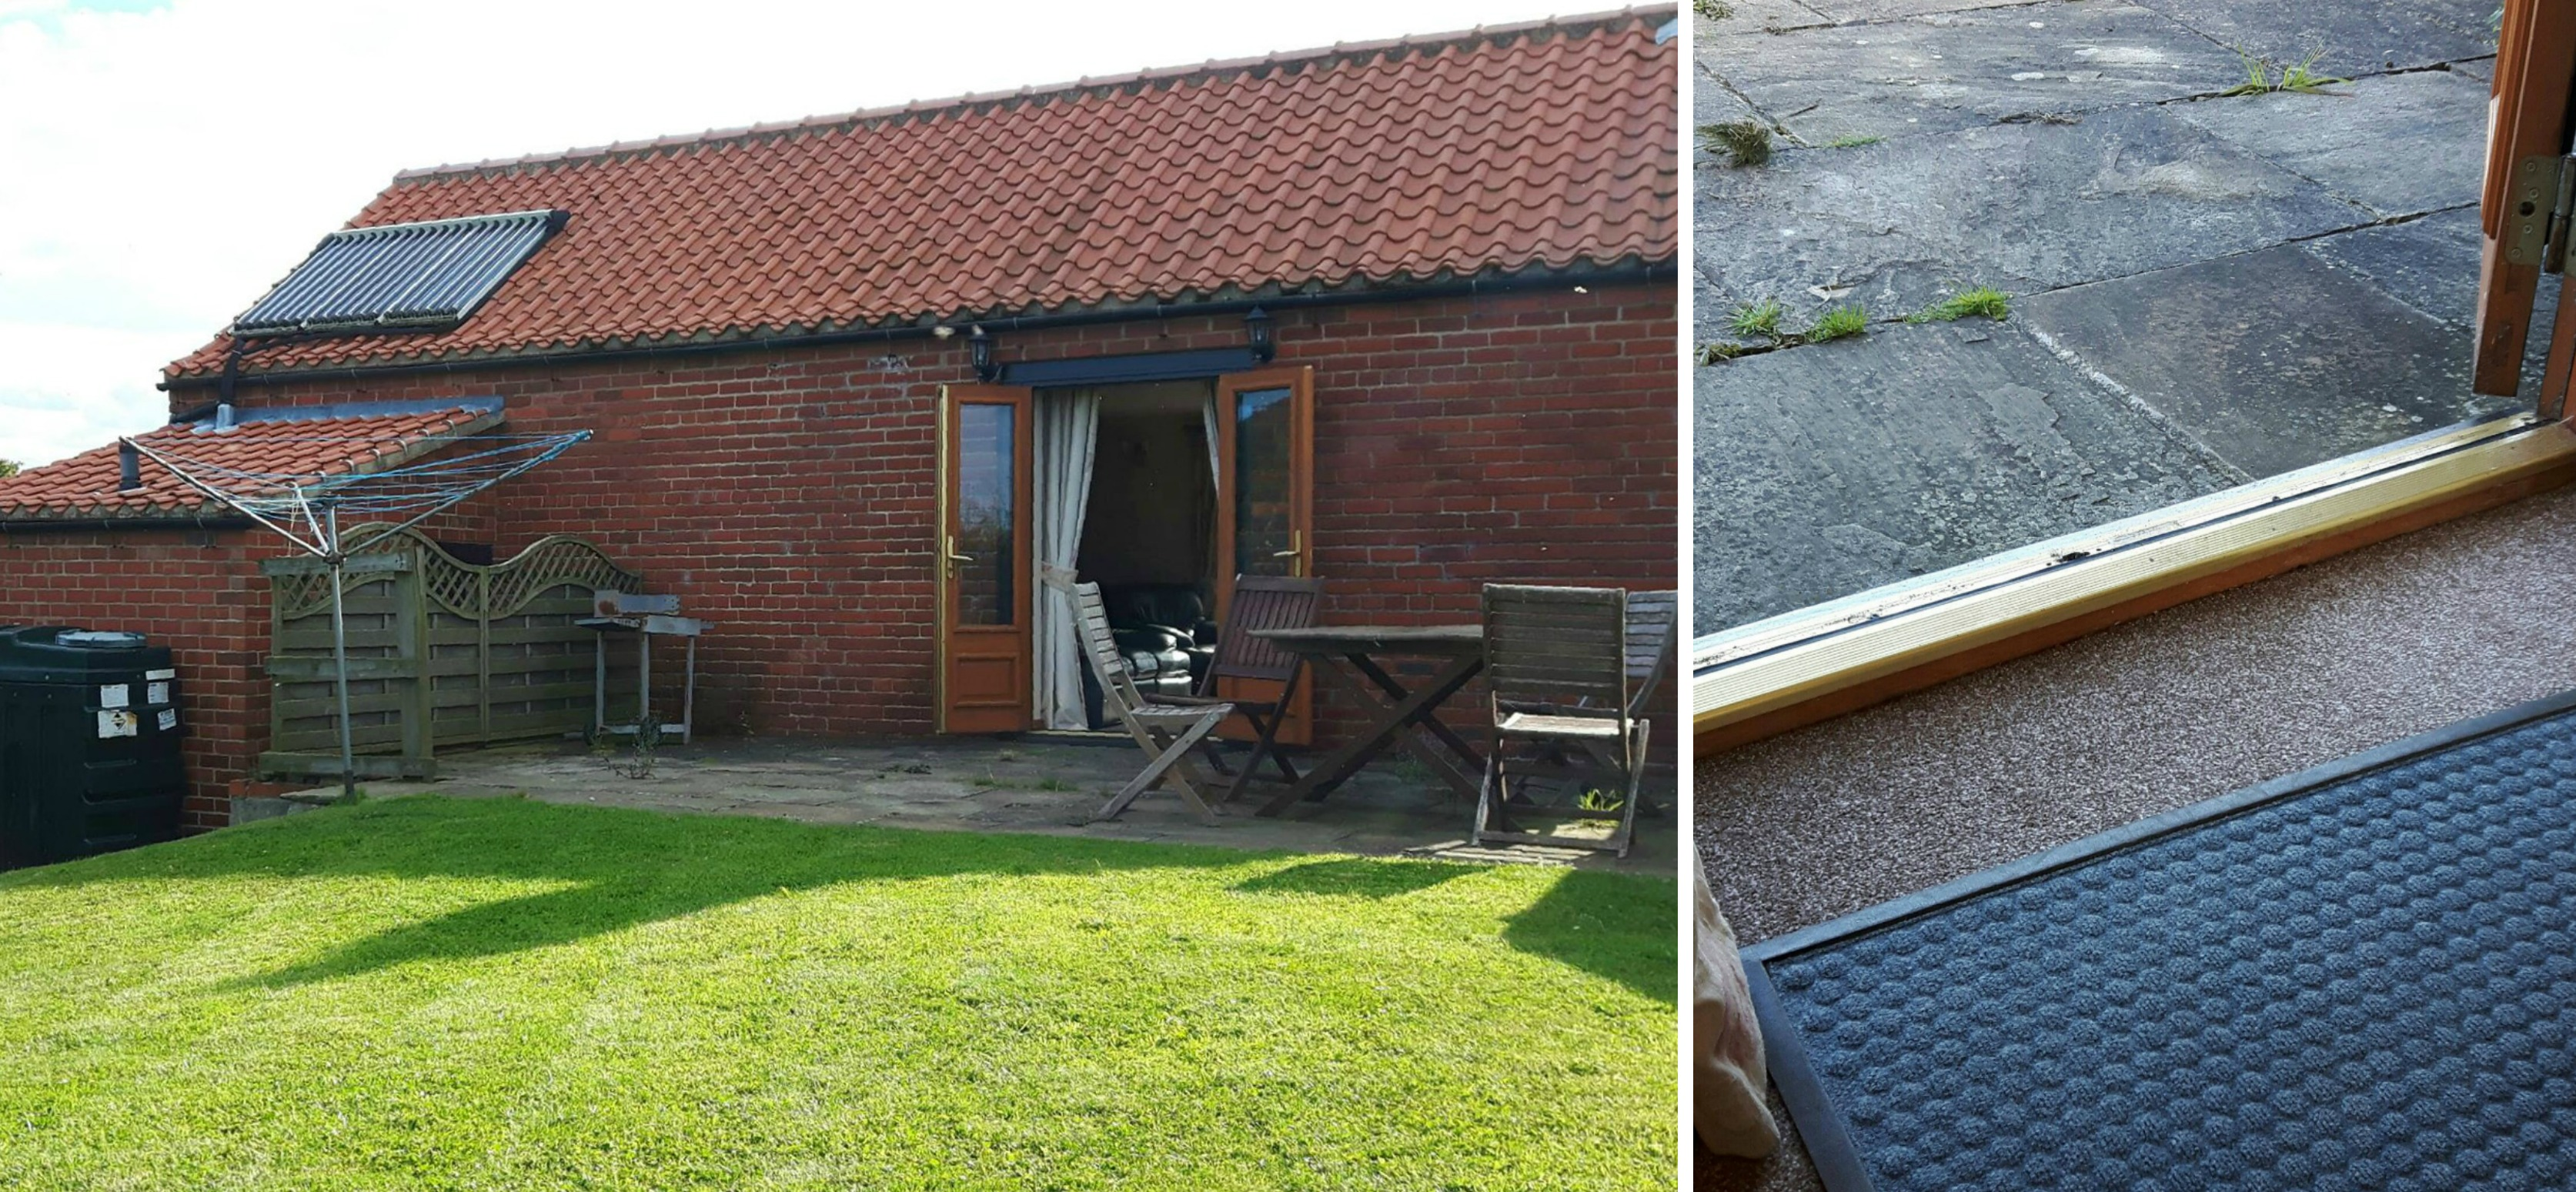 Wheelchair accessible holiday homes uk for Wheelchair accessible housing